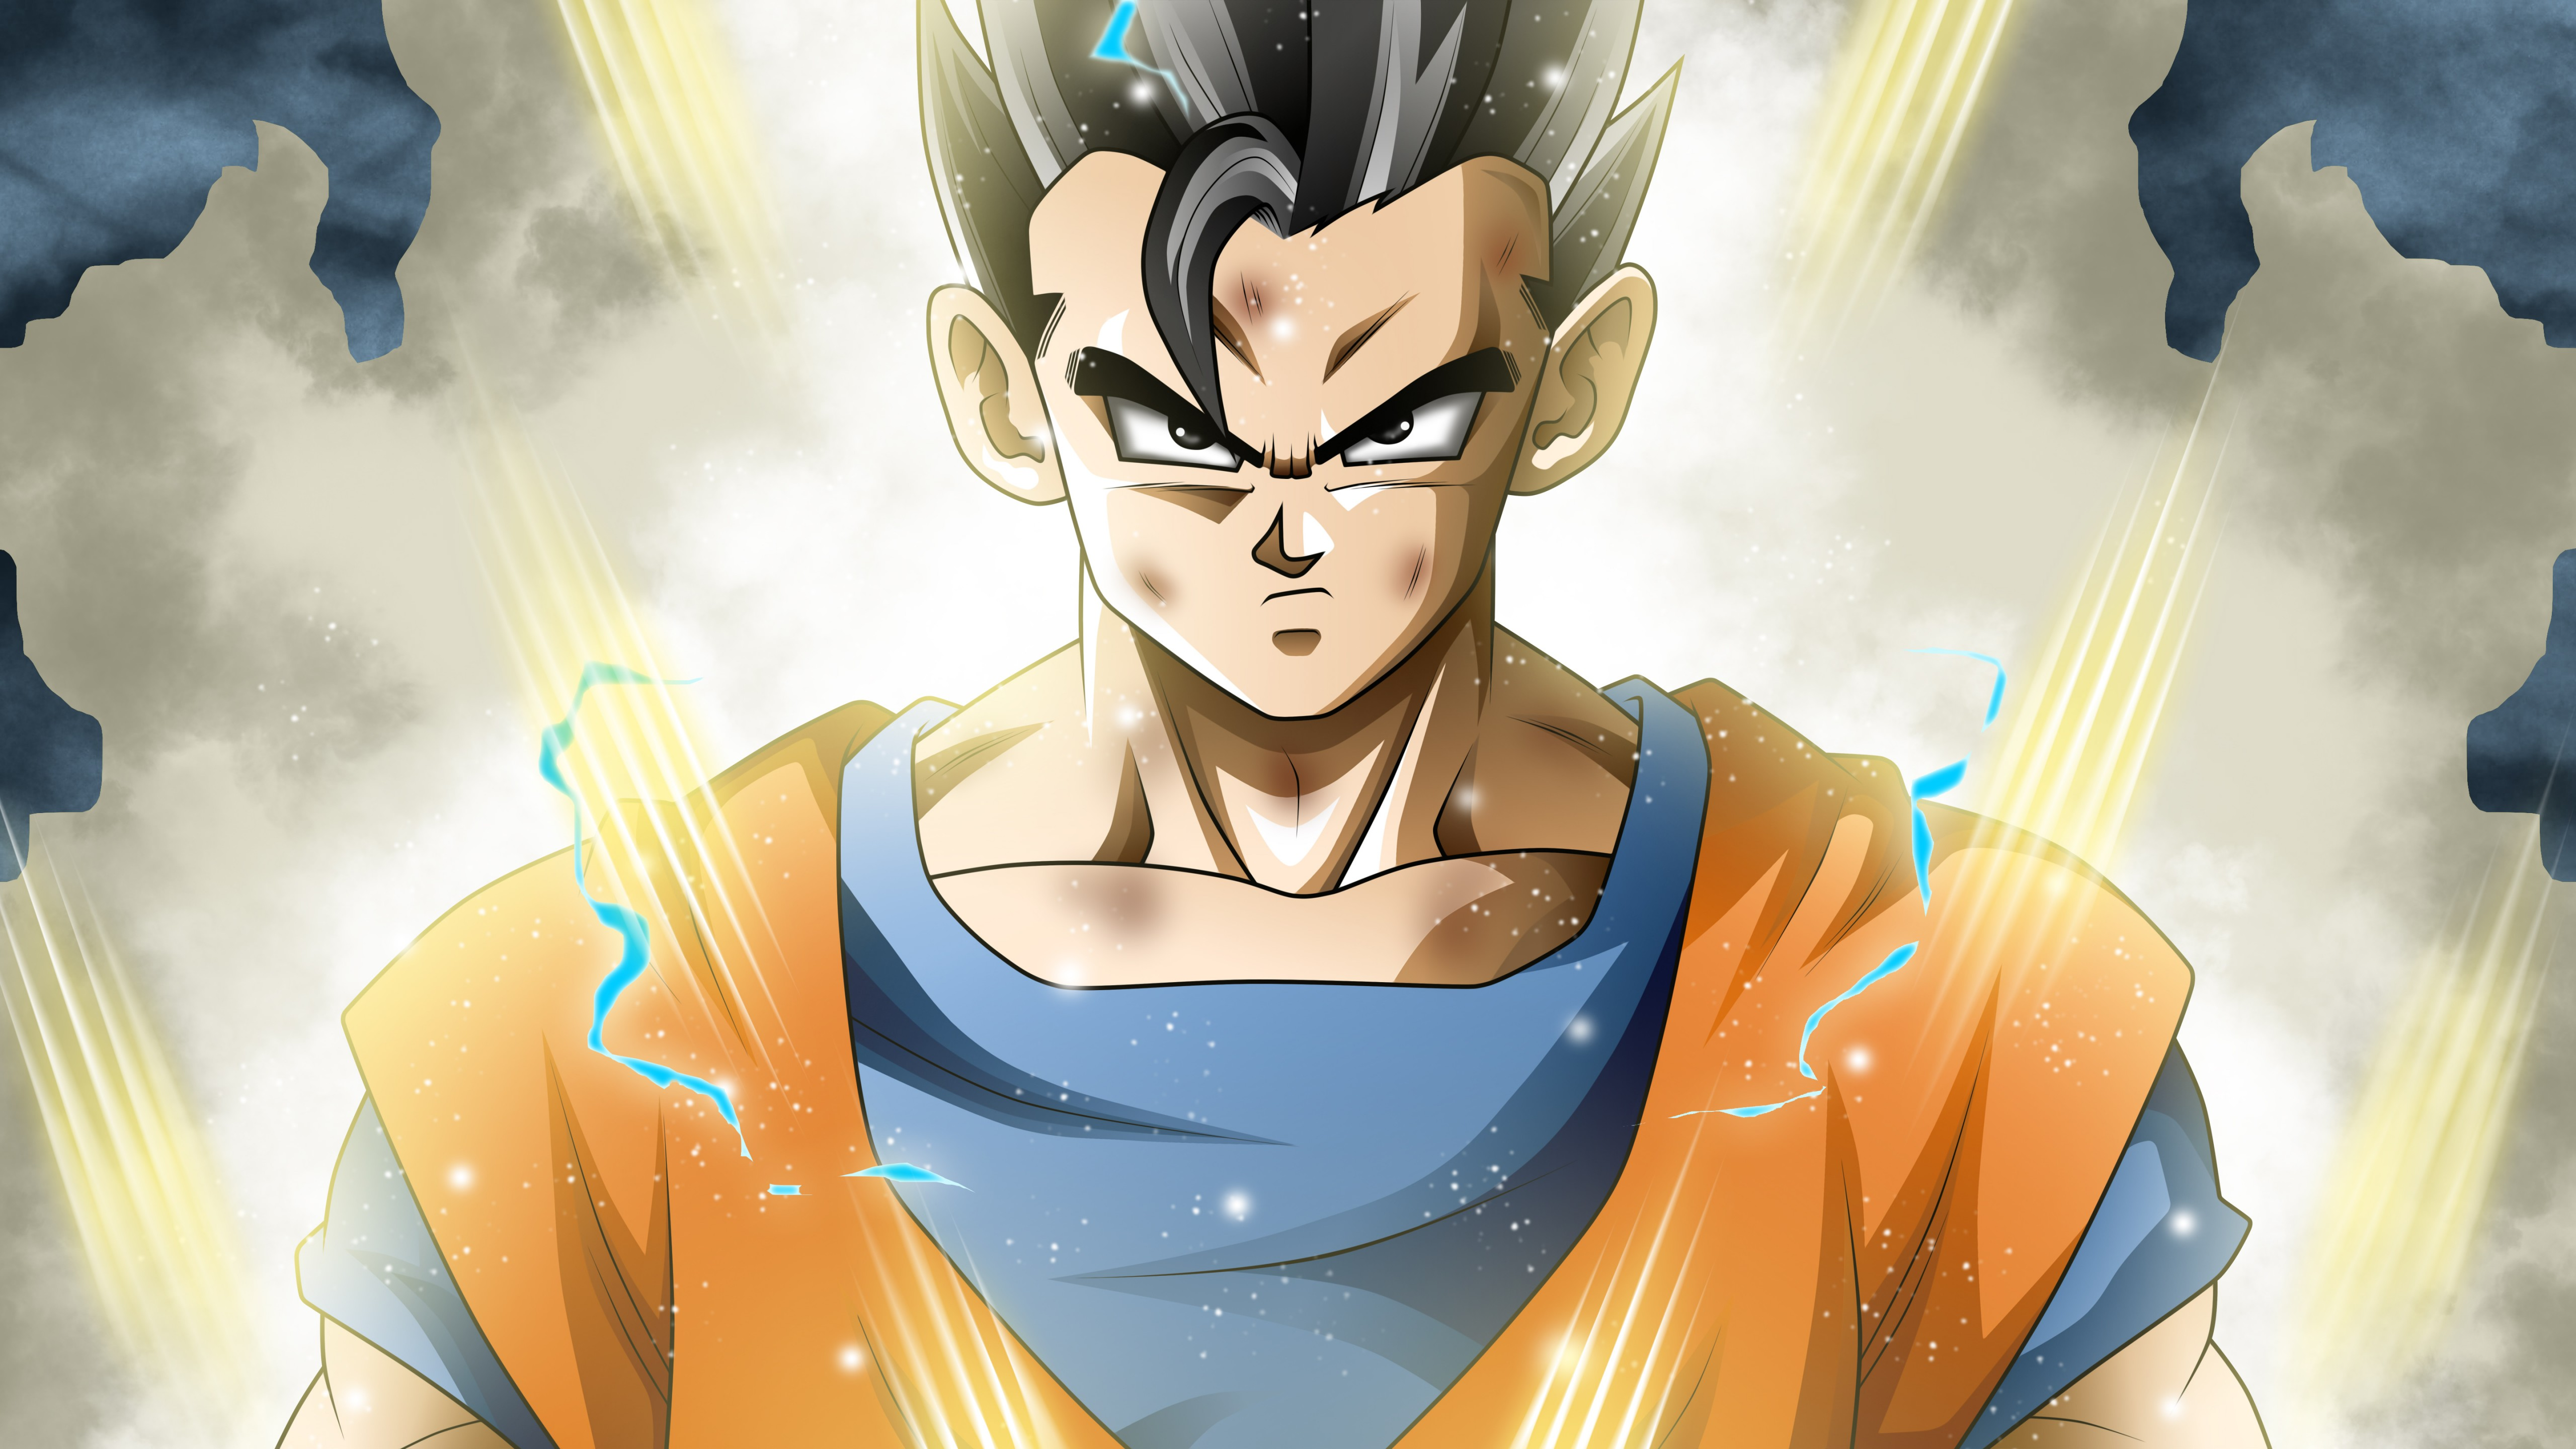 Fondos de pantalla Anime Mystic / Ultimate Gohan de Dragon Ball Super